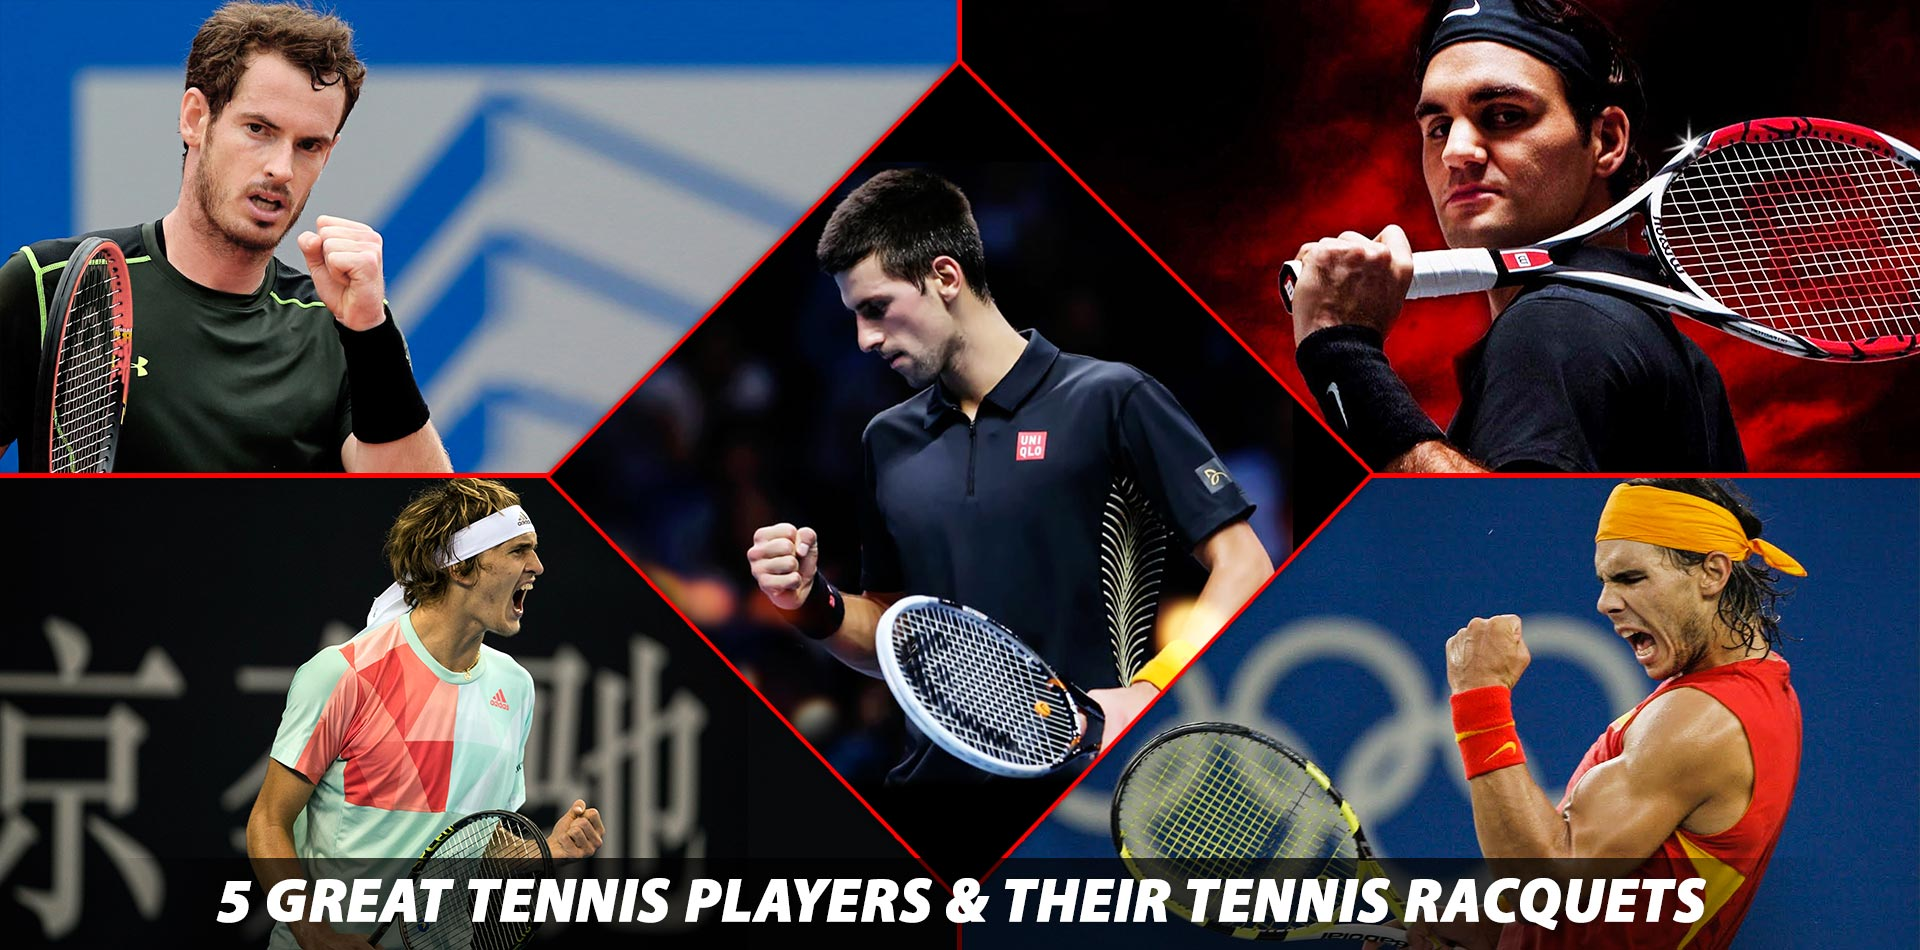 5 Great Tennis Players And Their Tennis Racquets